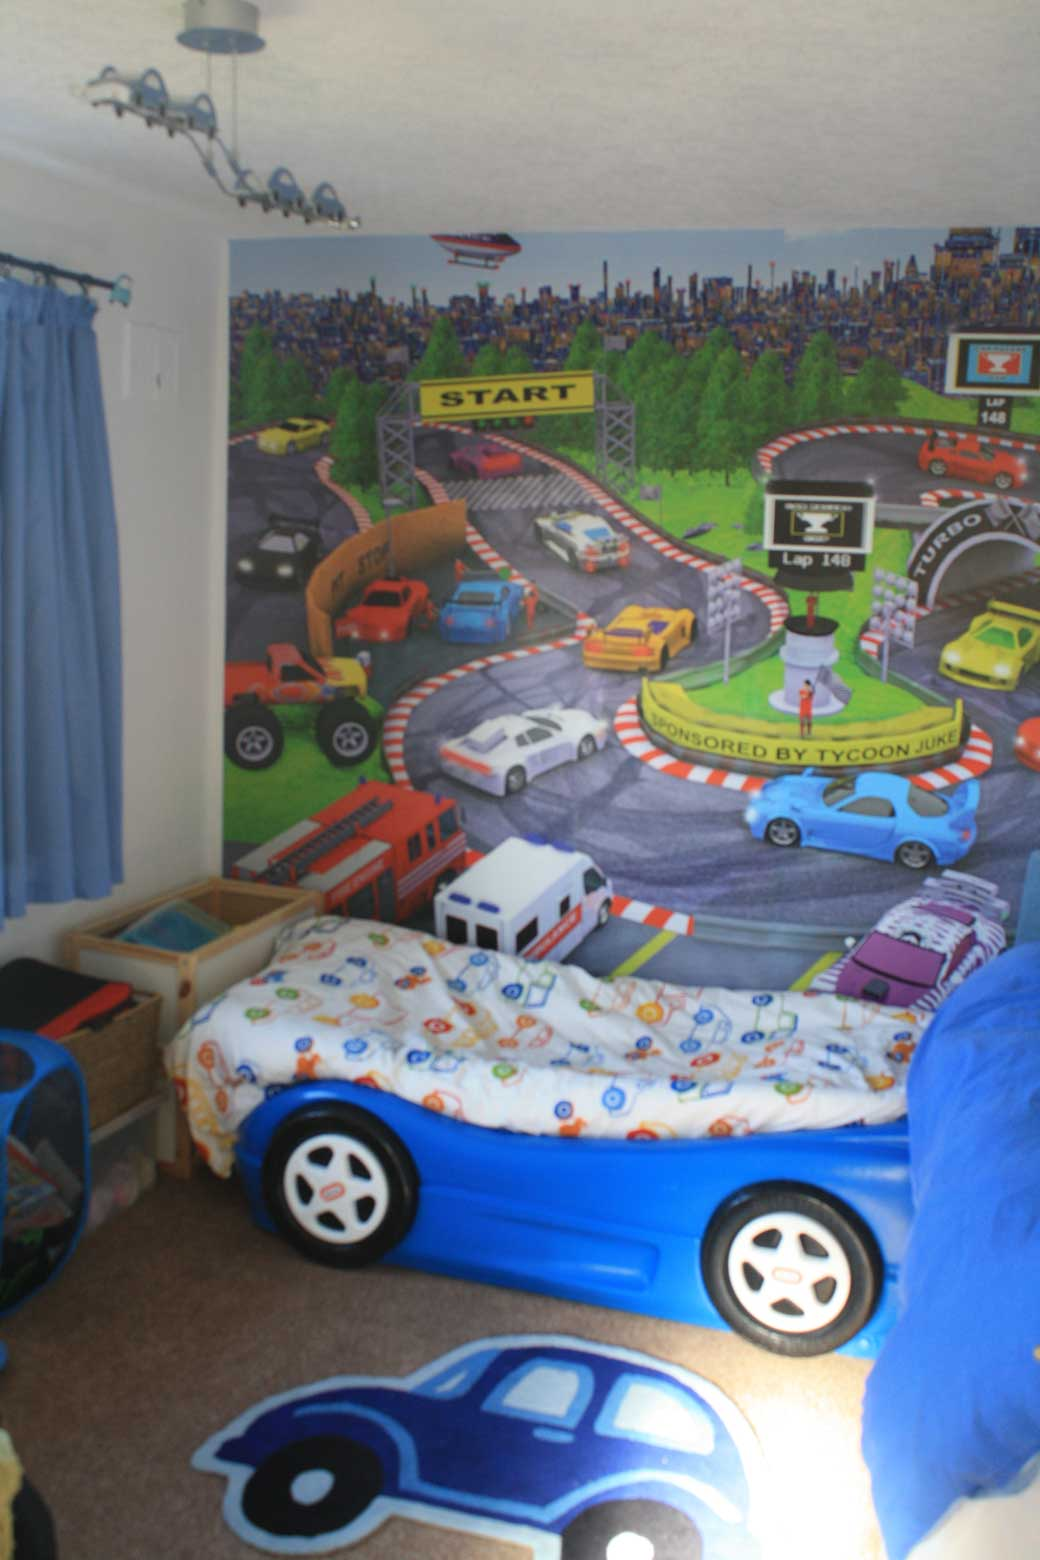 Playround theme bedroom wall mural